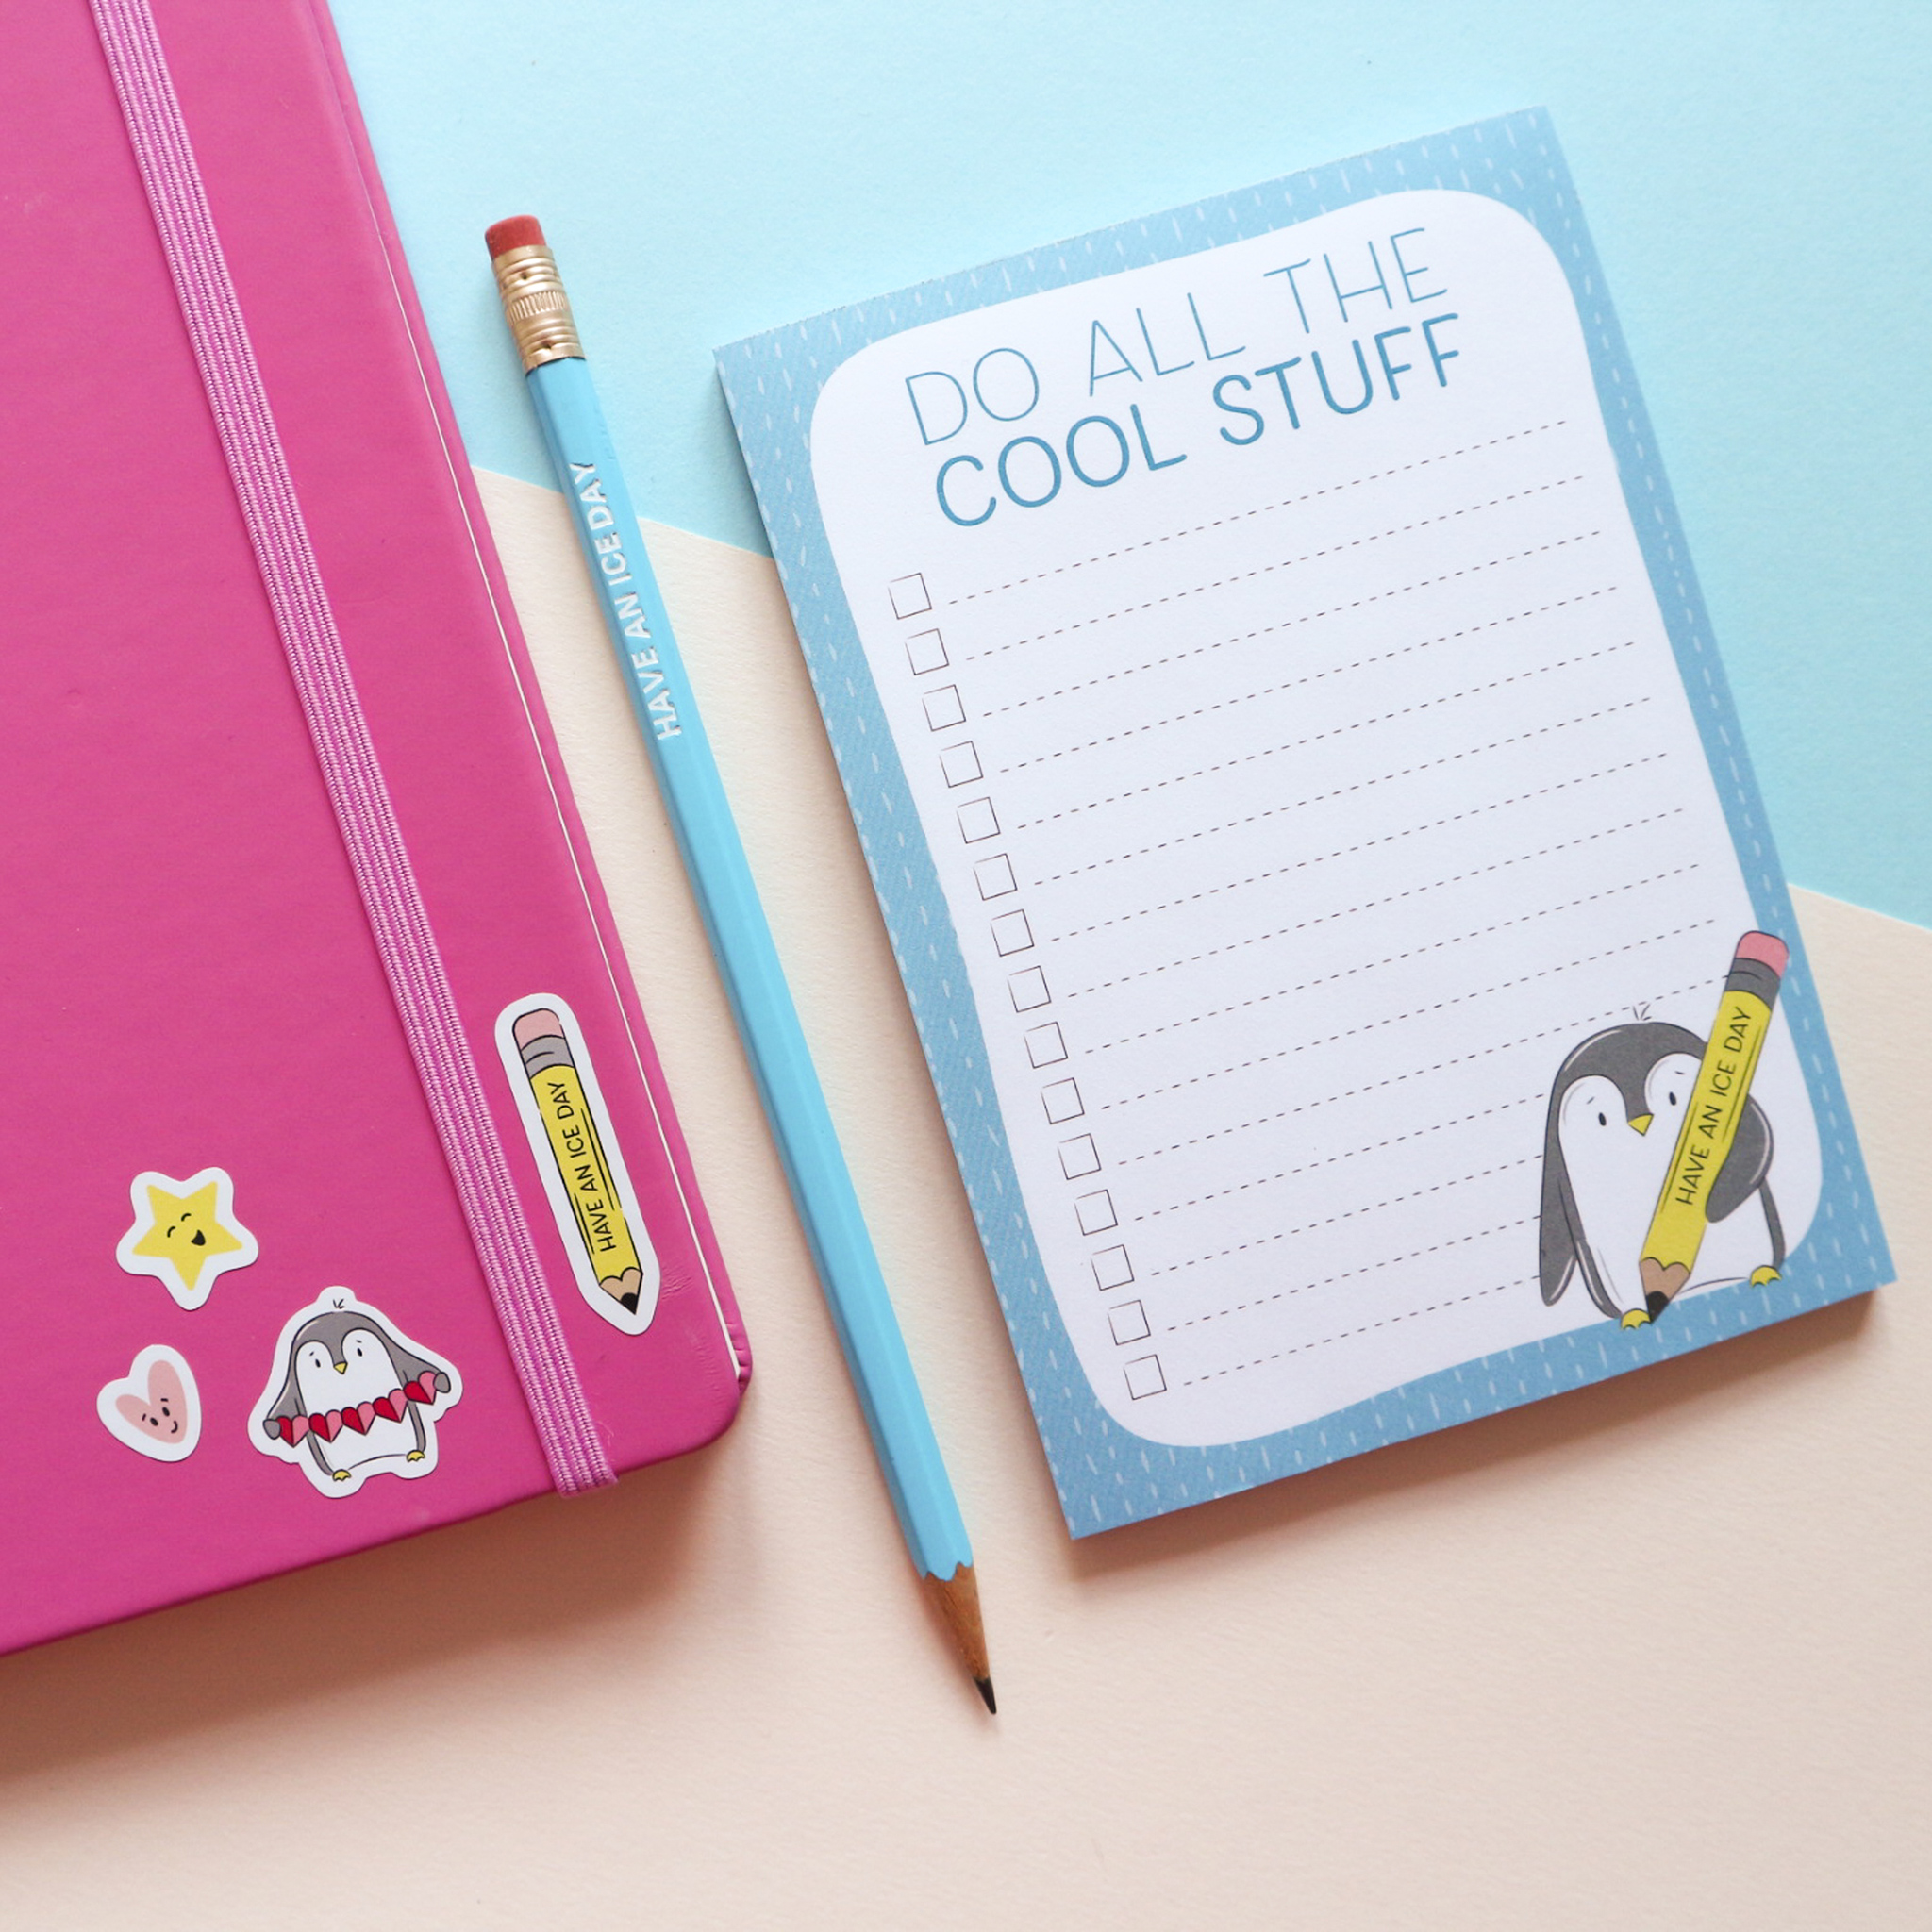 """""""Do All the Cool Things"""" To-Do List Notepad with an illustration of a penguin holding a pencil that reads """"Have an ice day"""" and blue pencil (which comes in a set) that reads """"Have an ice day"""" styled with a pink notepad and matching stickers, on a white and blue background."""